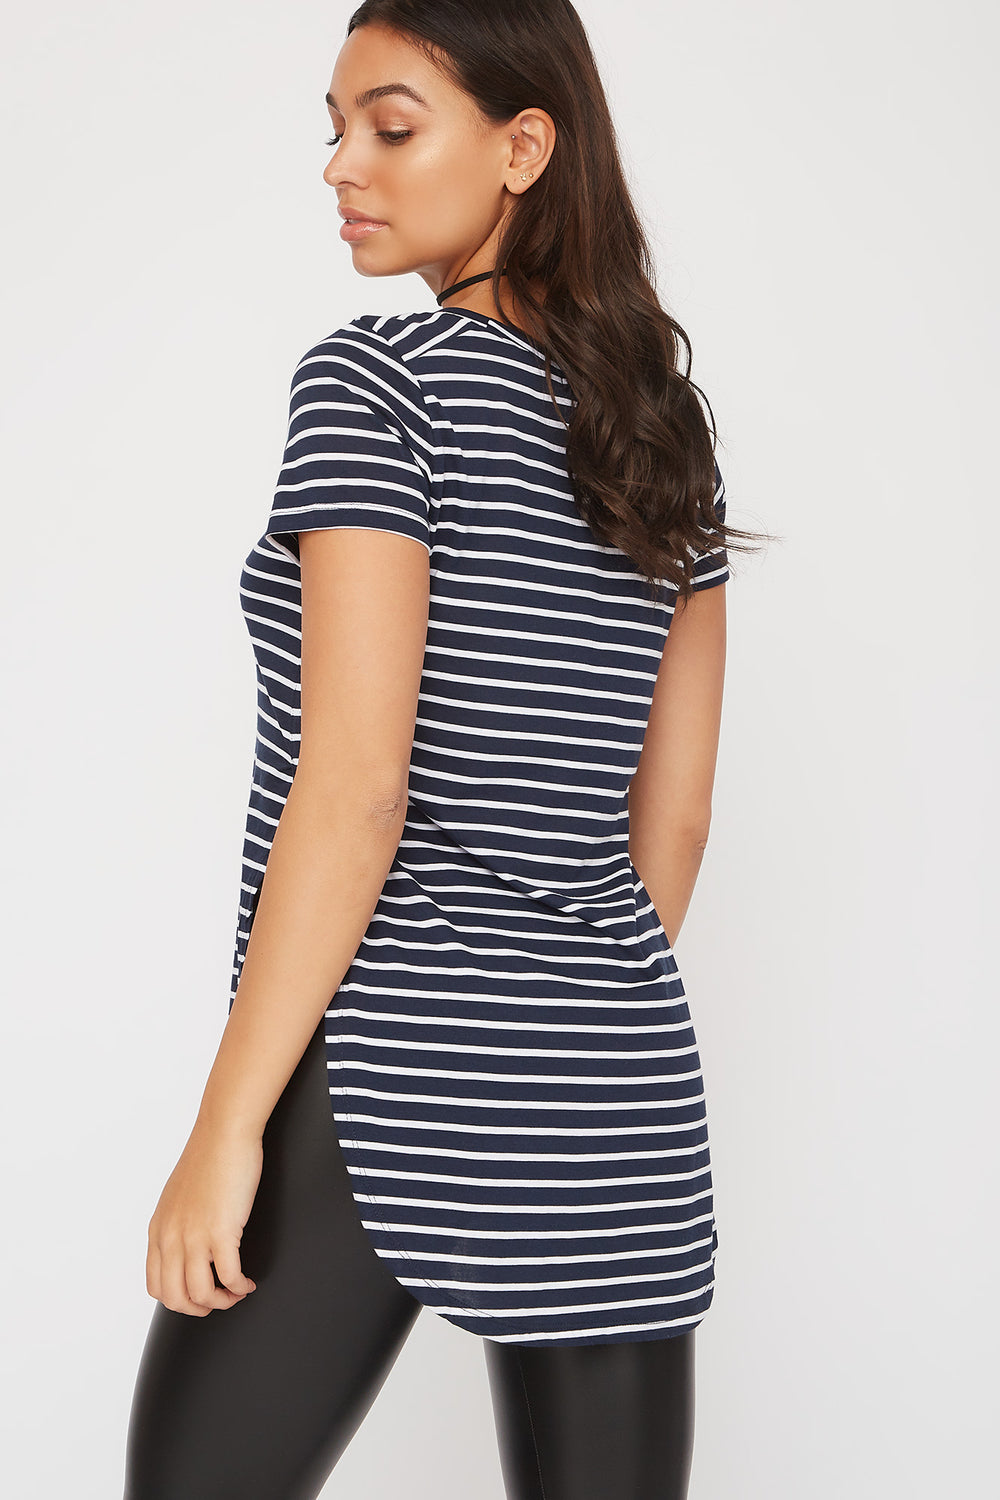 Relaxed Striped Curve Hem  T-Shirt Navy Blue